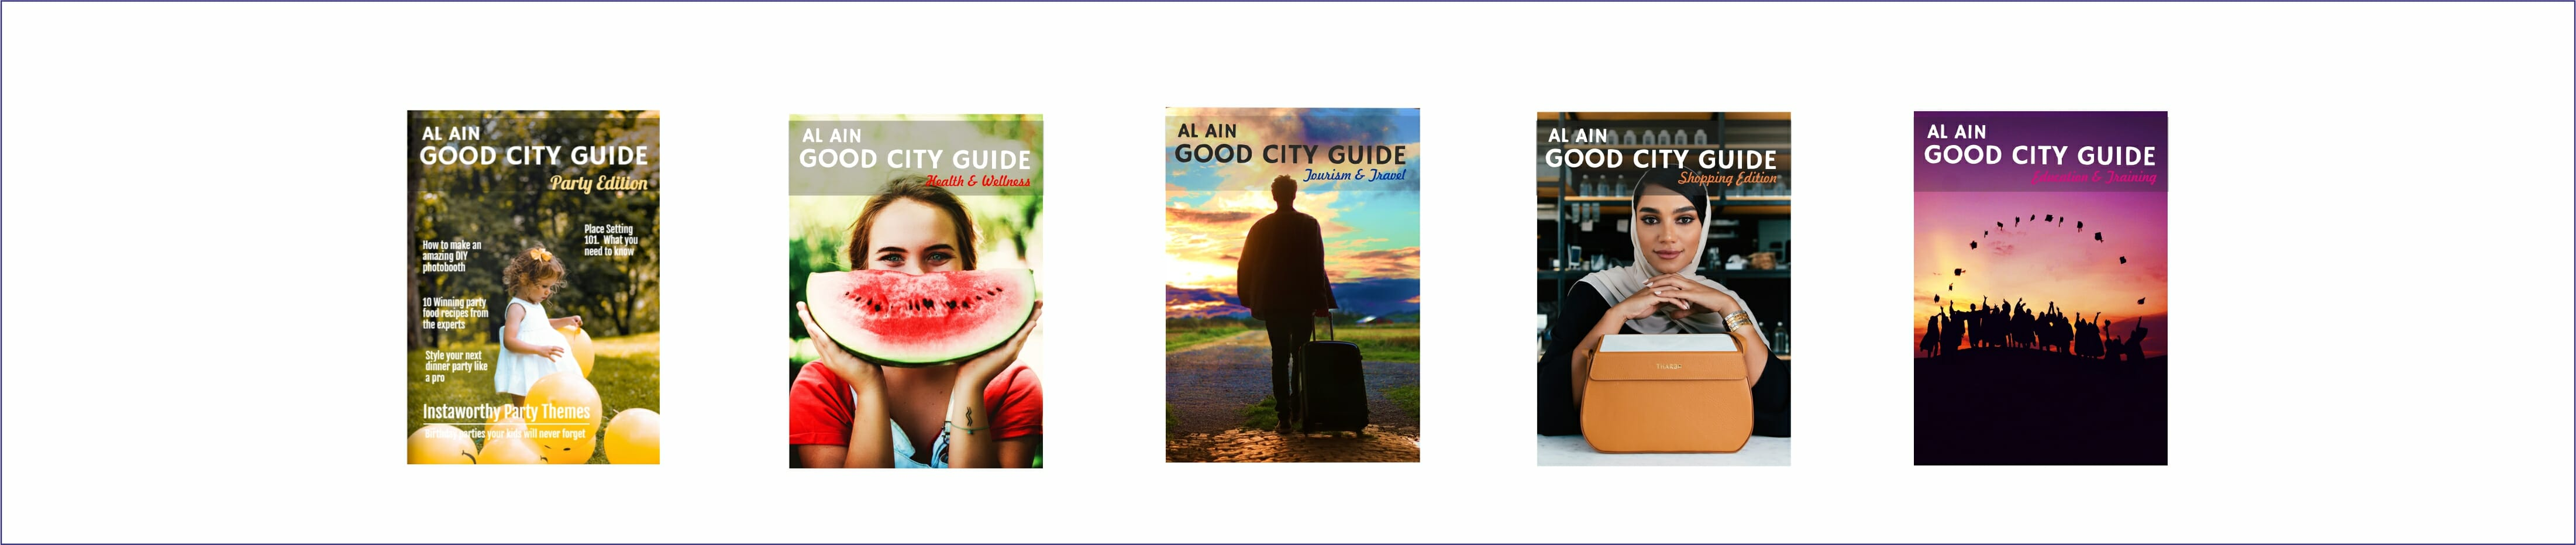 Al Ain Good City Guides Header white